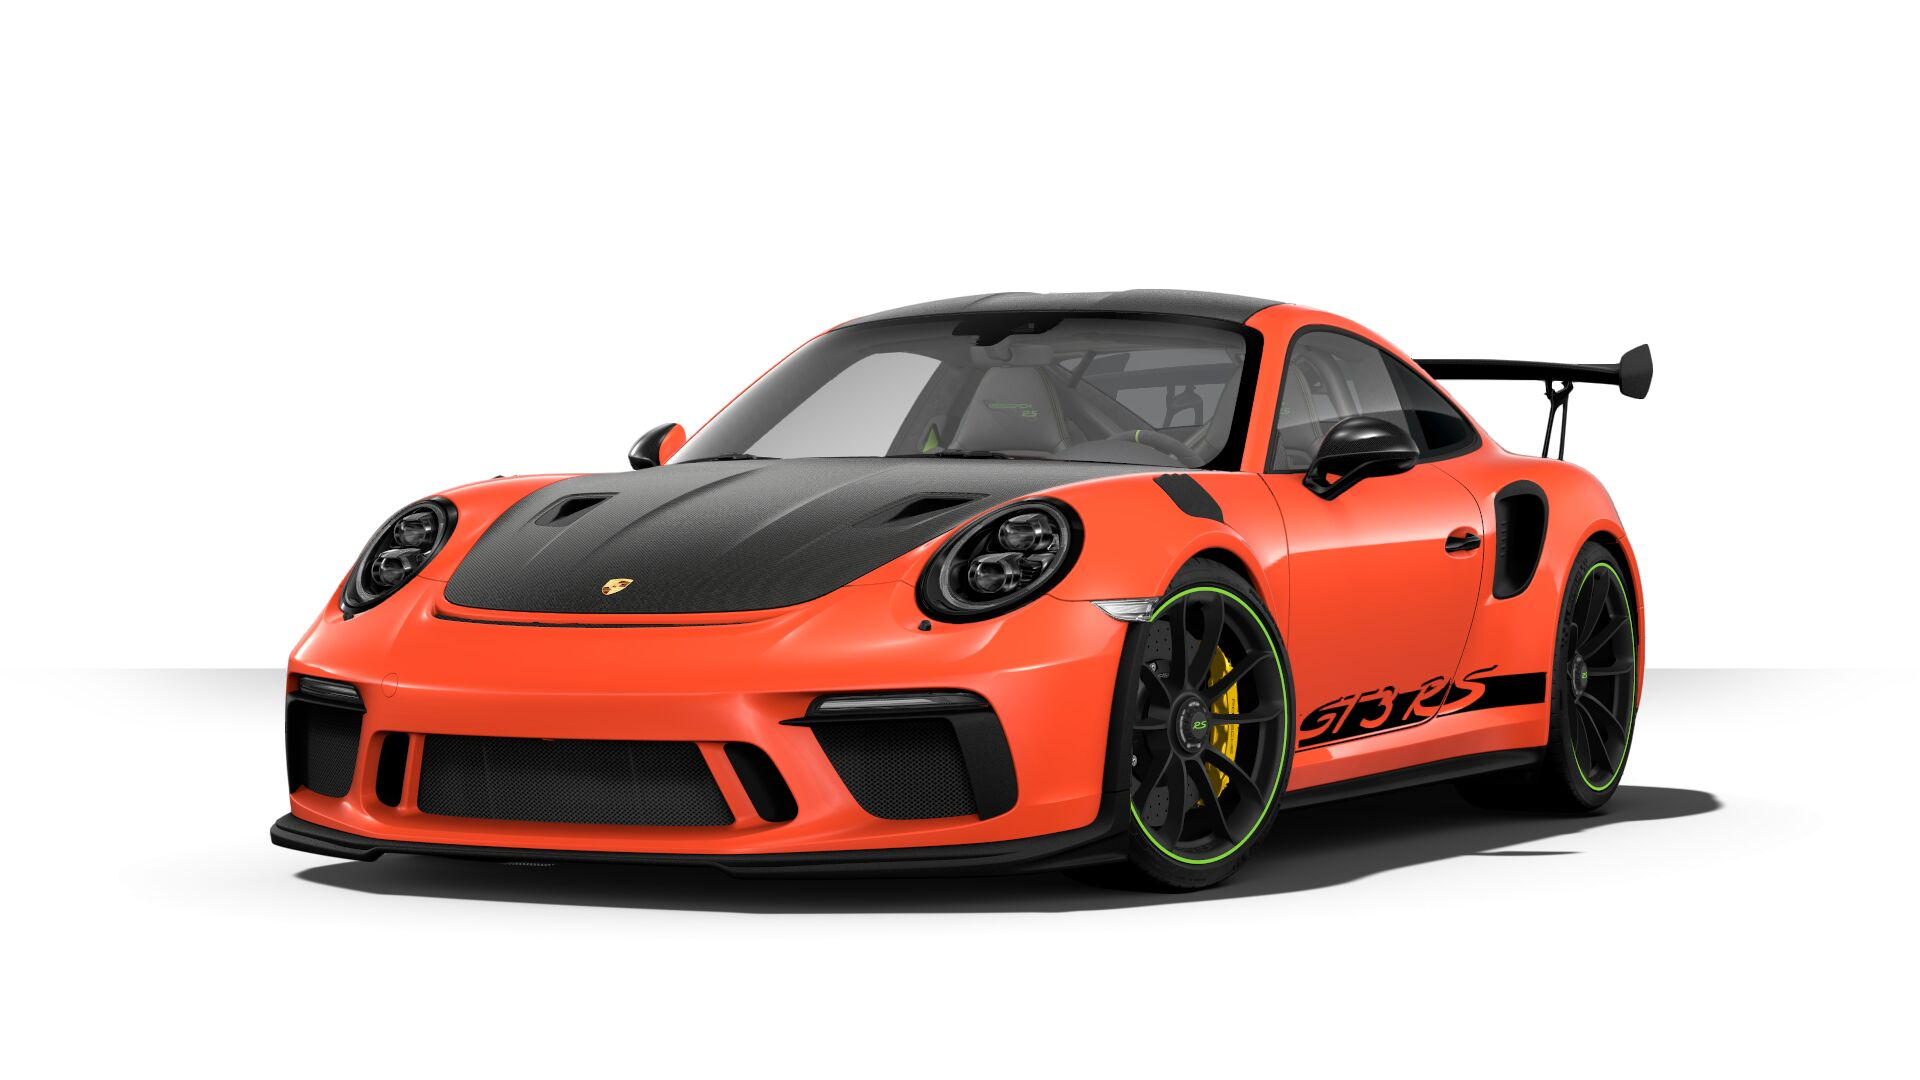 gooi de porsche 911 gt3 rs door de configurator. Black Bedroom Furniture Sets. Home Design Ideas